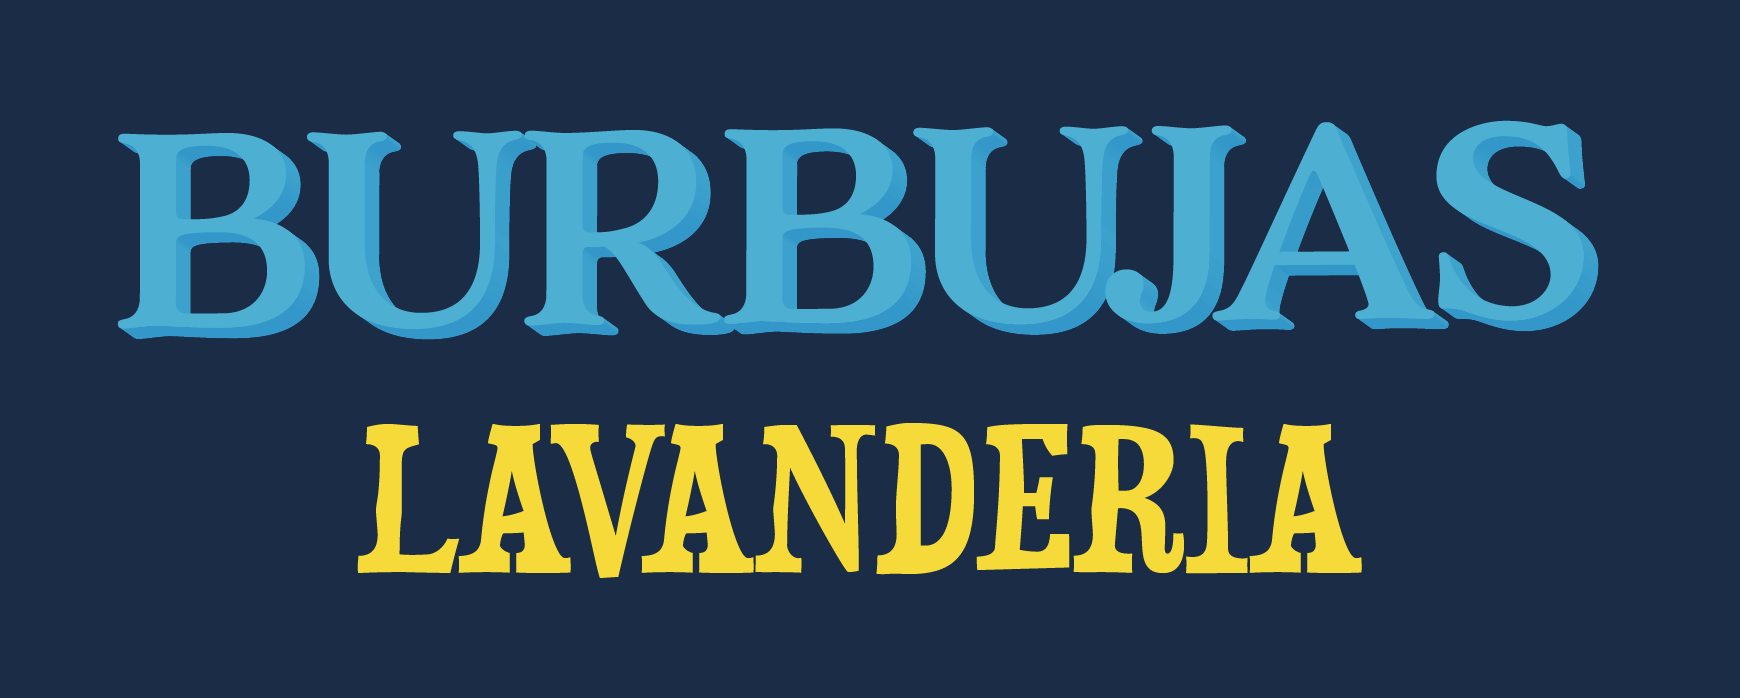 Type specimen with Burbujas in AdornS and Lavanderia in Duality